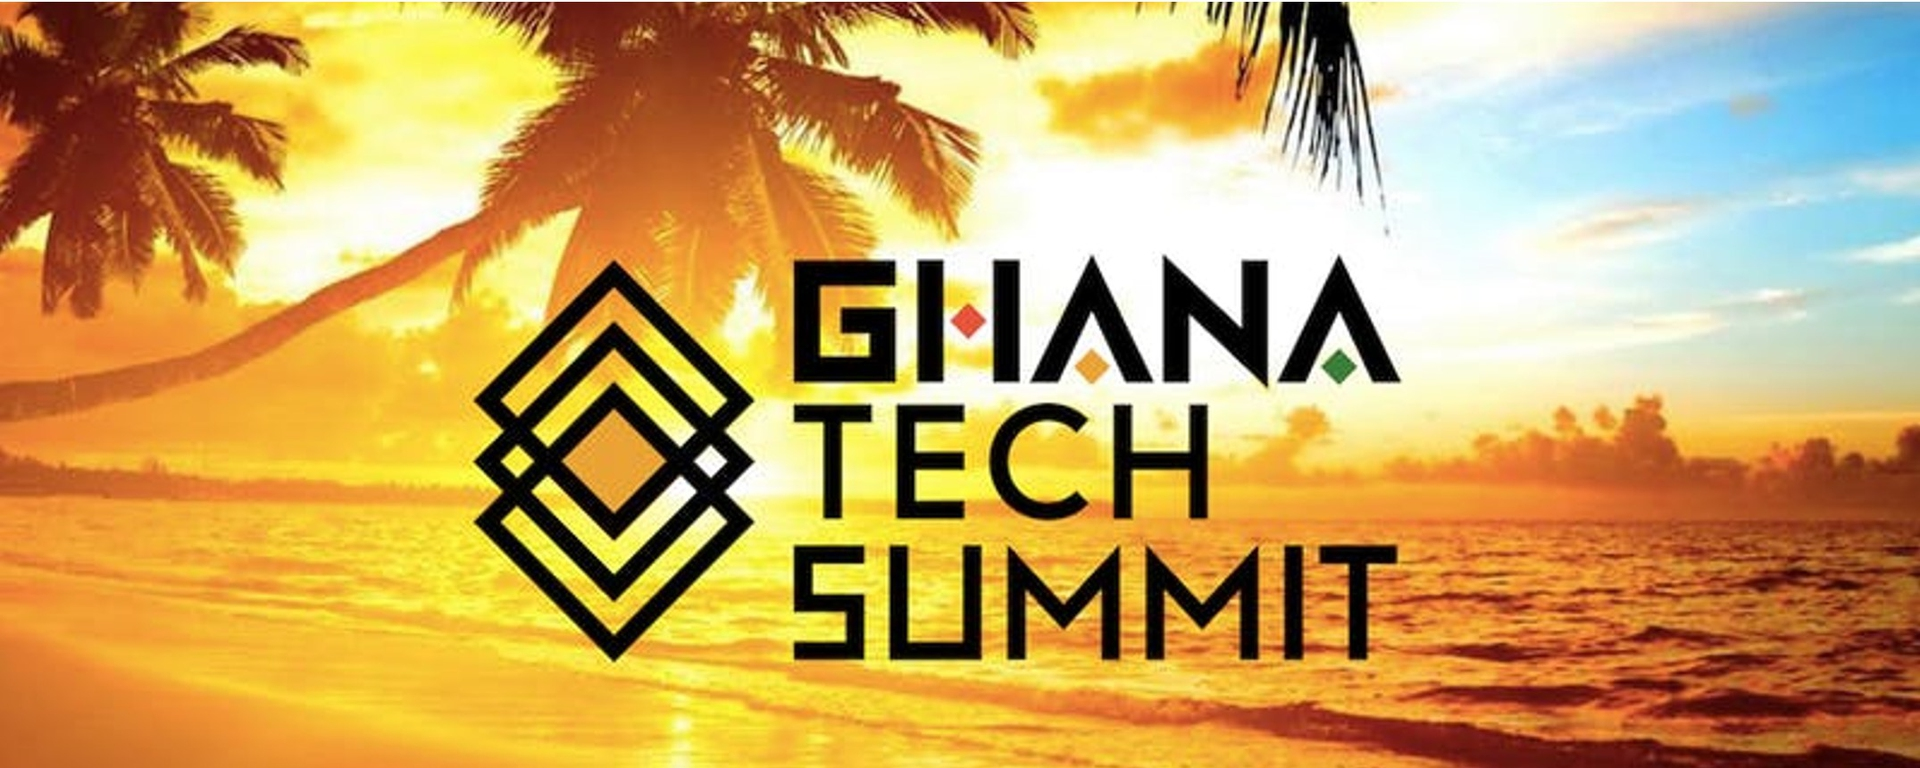 Ghana Tech Summit - Ghana Tech Summit 2019 Movemeback African event cover image